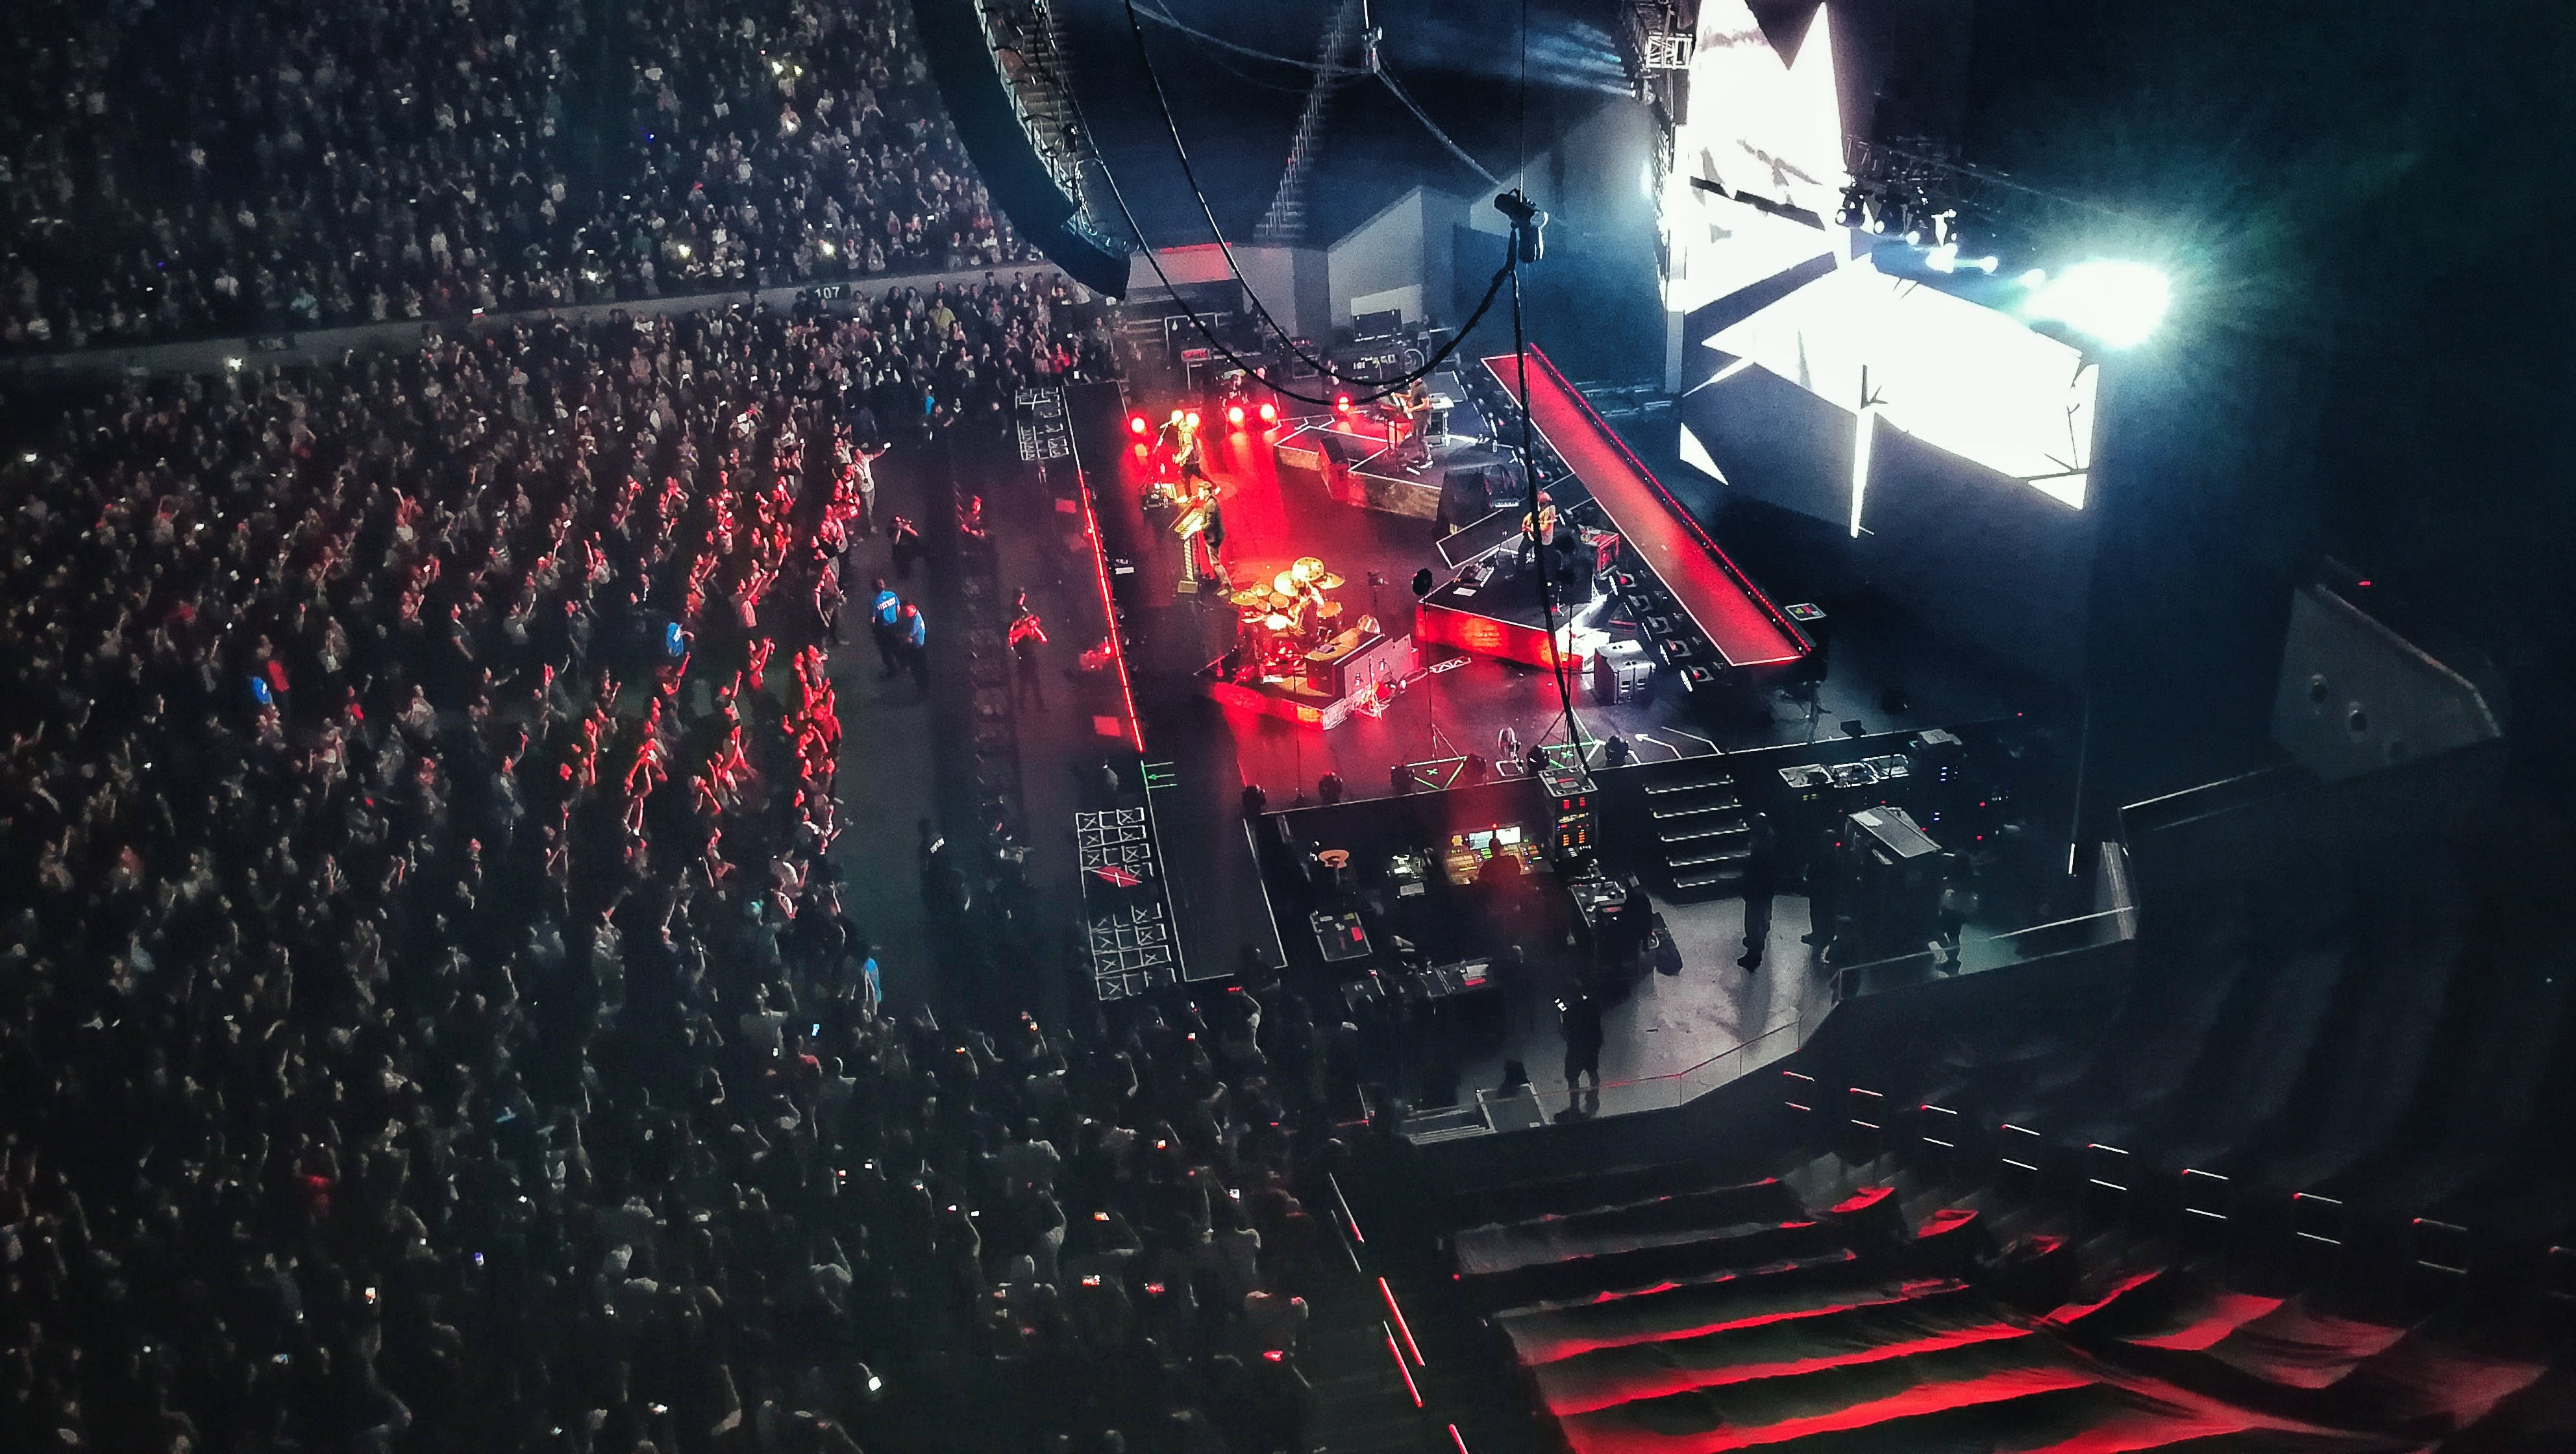 Free stock photo of arena, concert, Convert venue, crowd